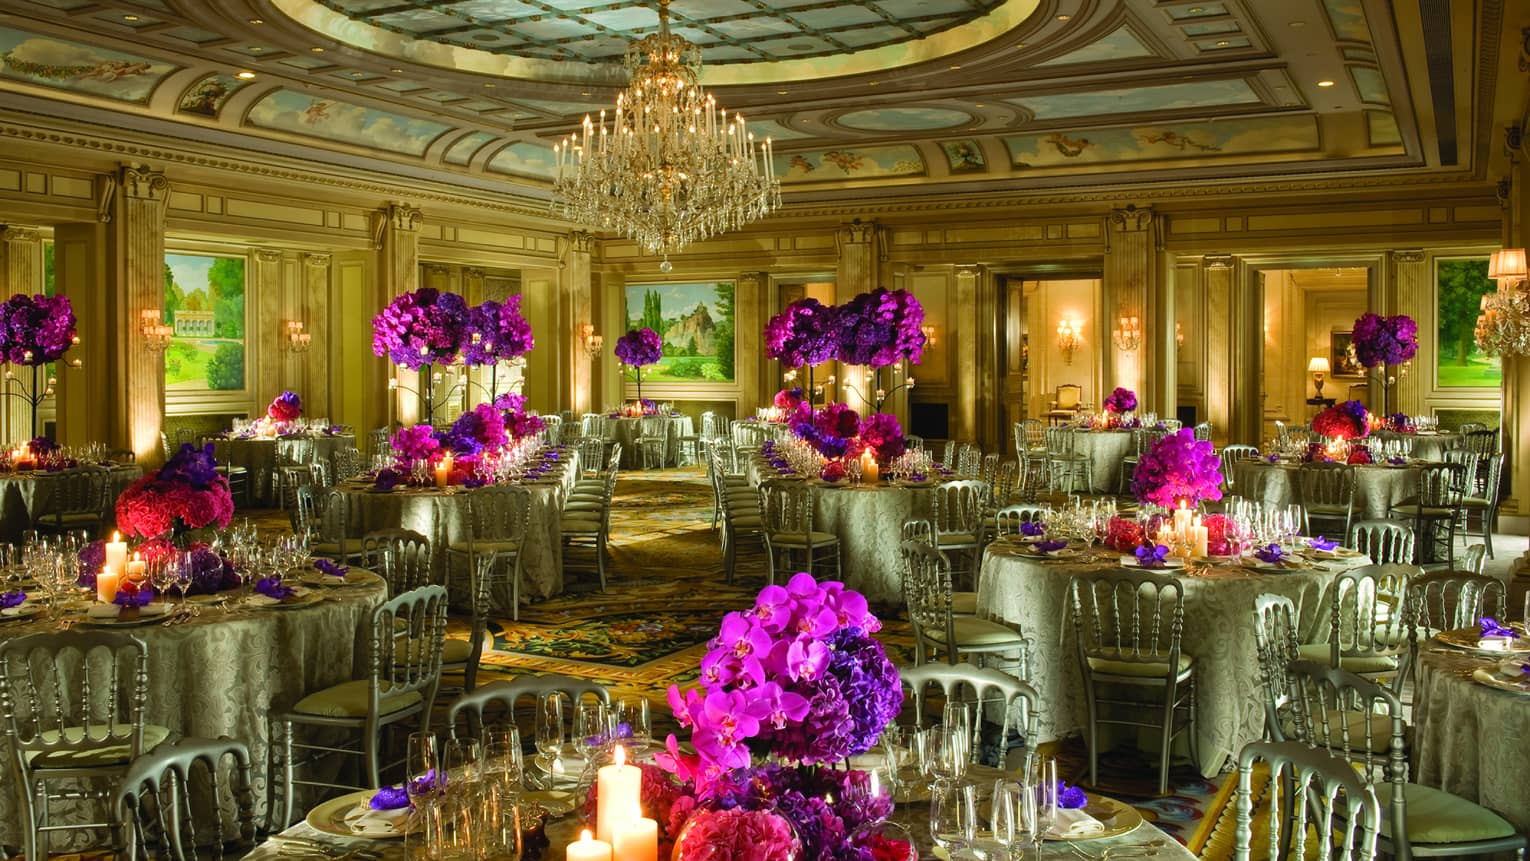 Salon Vendome round banquet dining tables with purple flowers under dome ceiling, chandelier